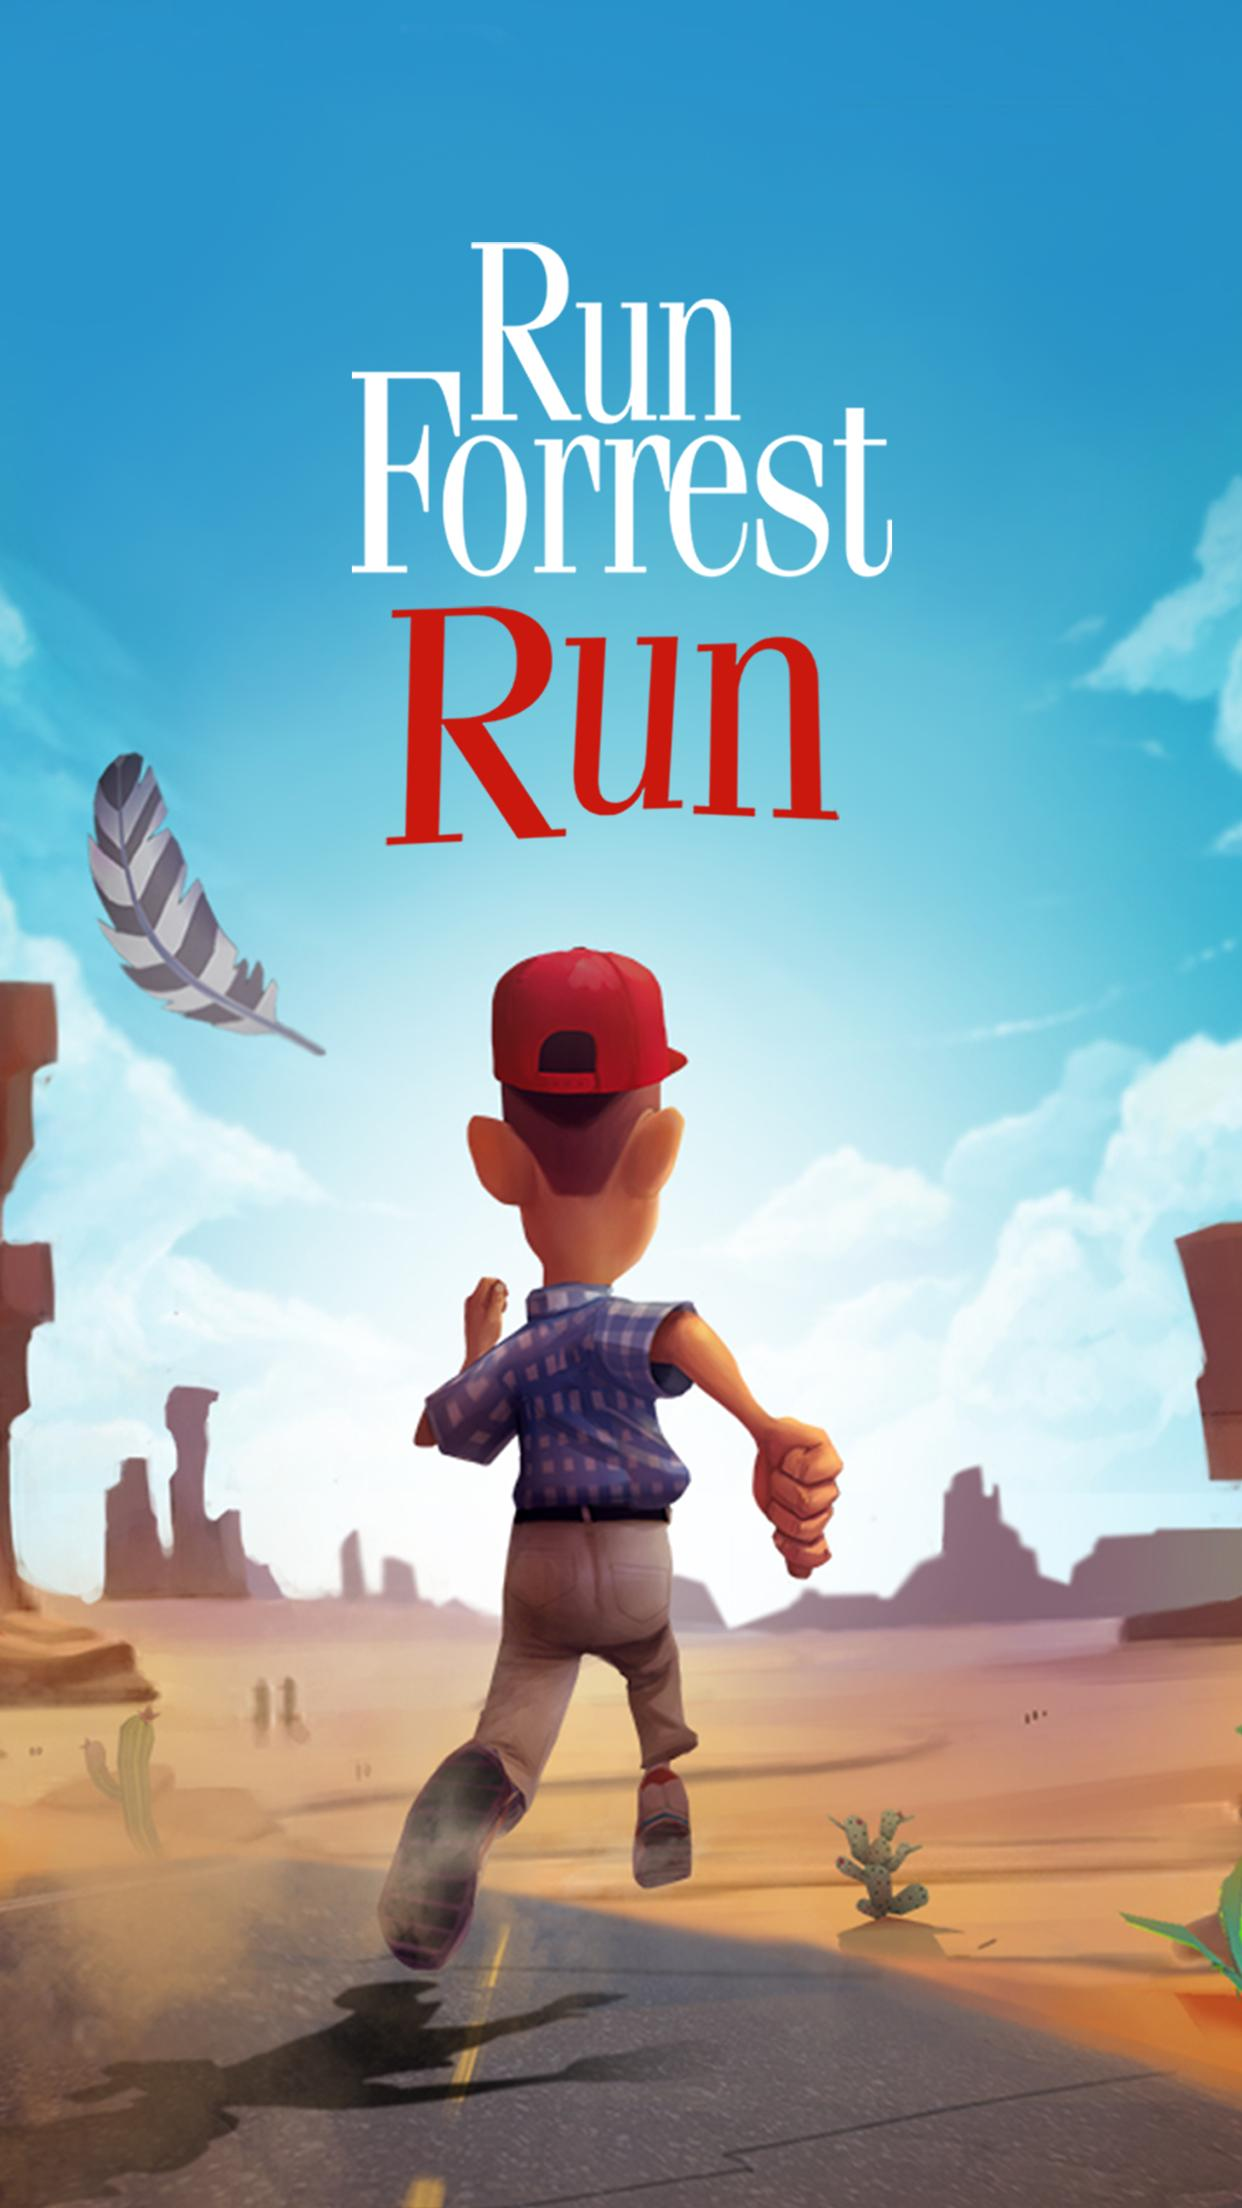 Run Forrest Run - New Games 2020: Running Games 1.6.4 Screenshot 6